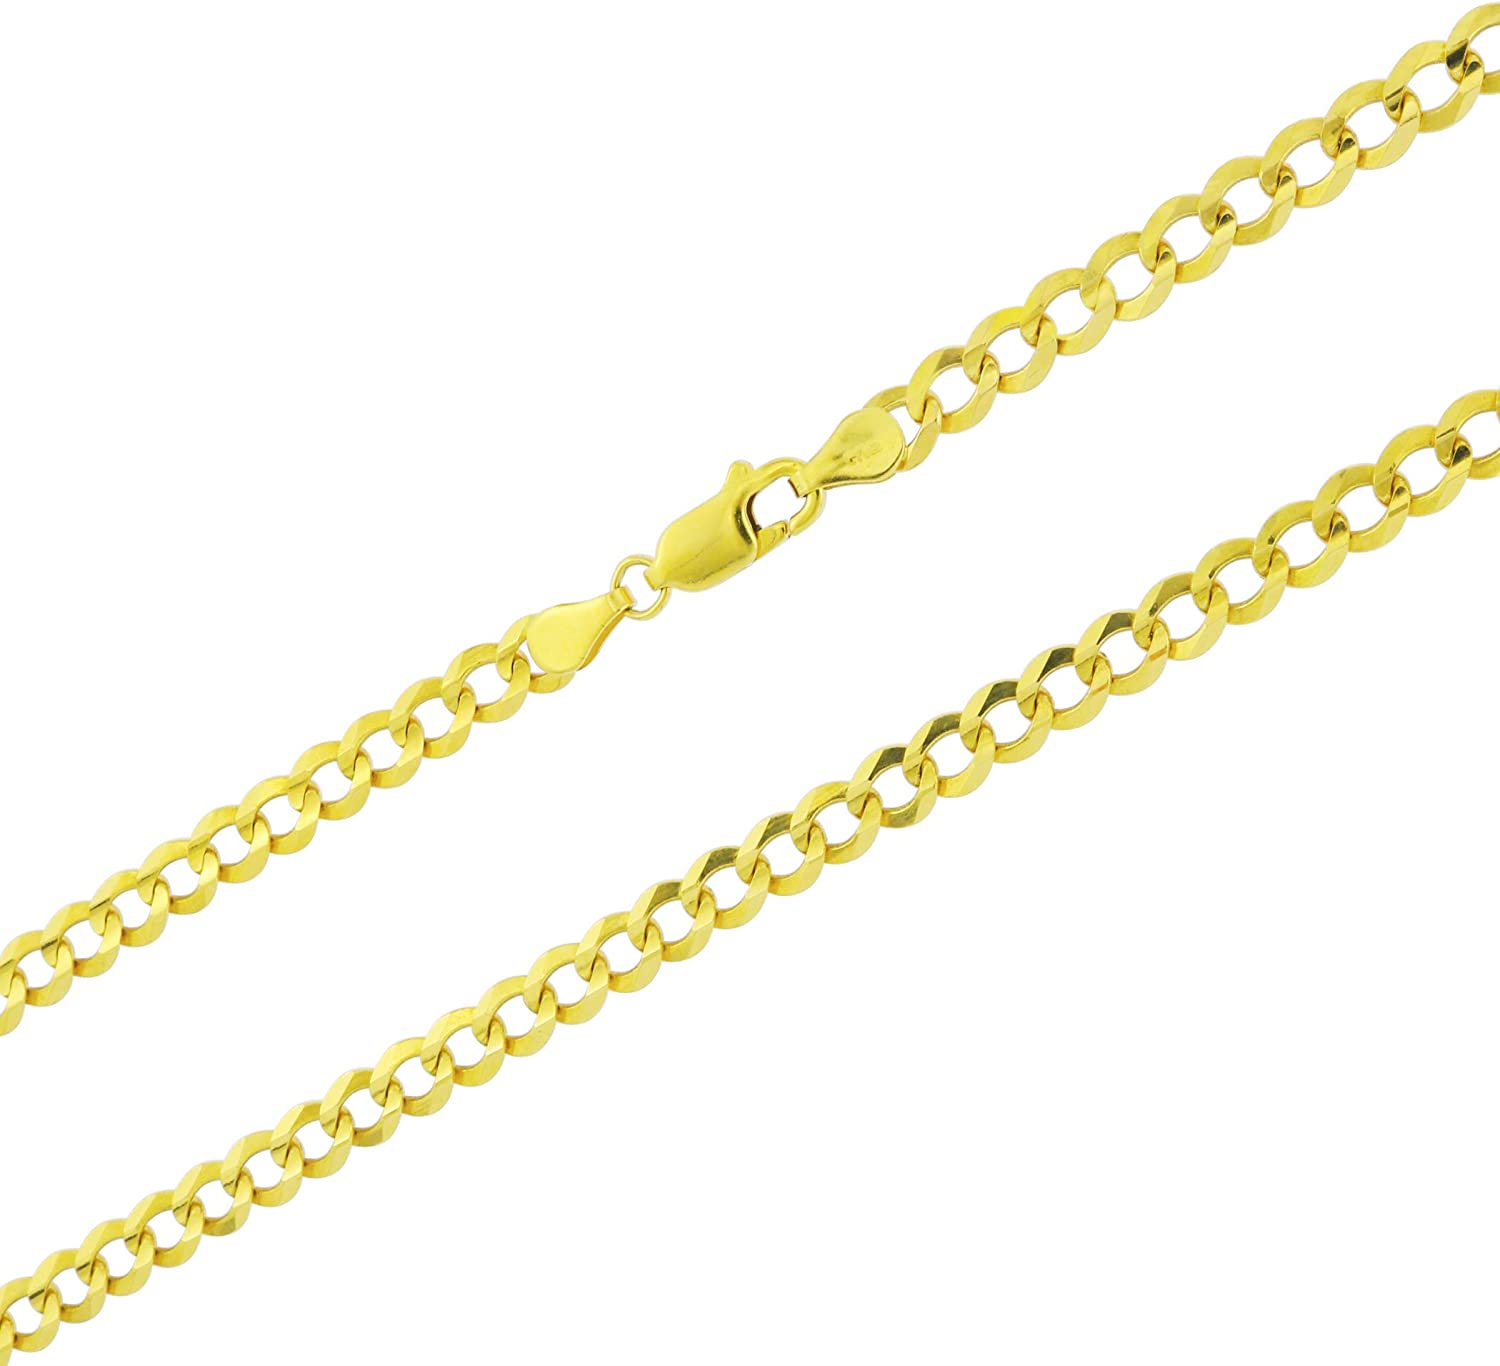 Nuragold 14k Yellow Gold 5mm Solid Cuban Curb Link Chain Pendant Necklace, Mens Womens Lobster Lock 16